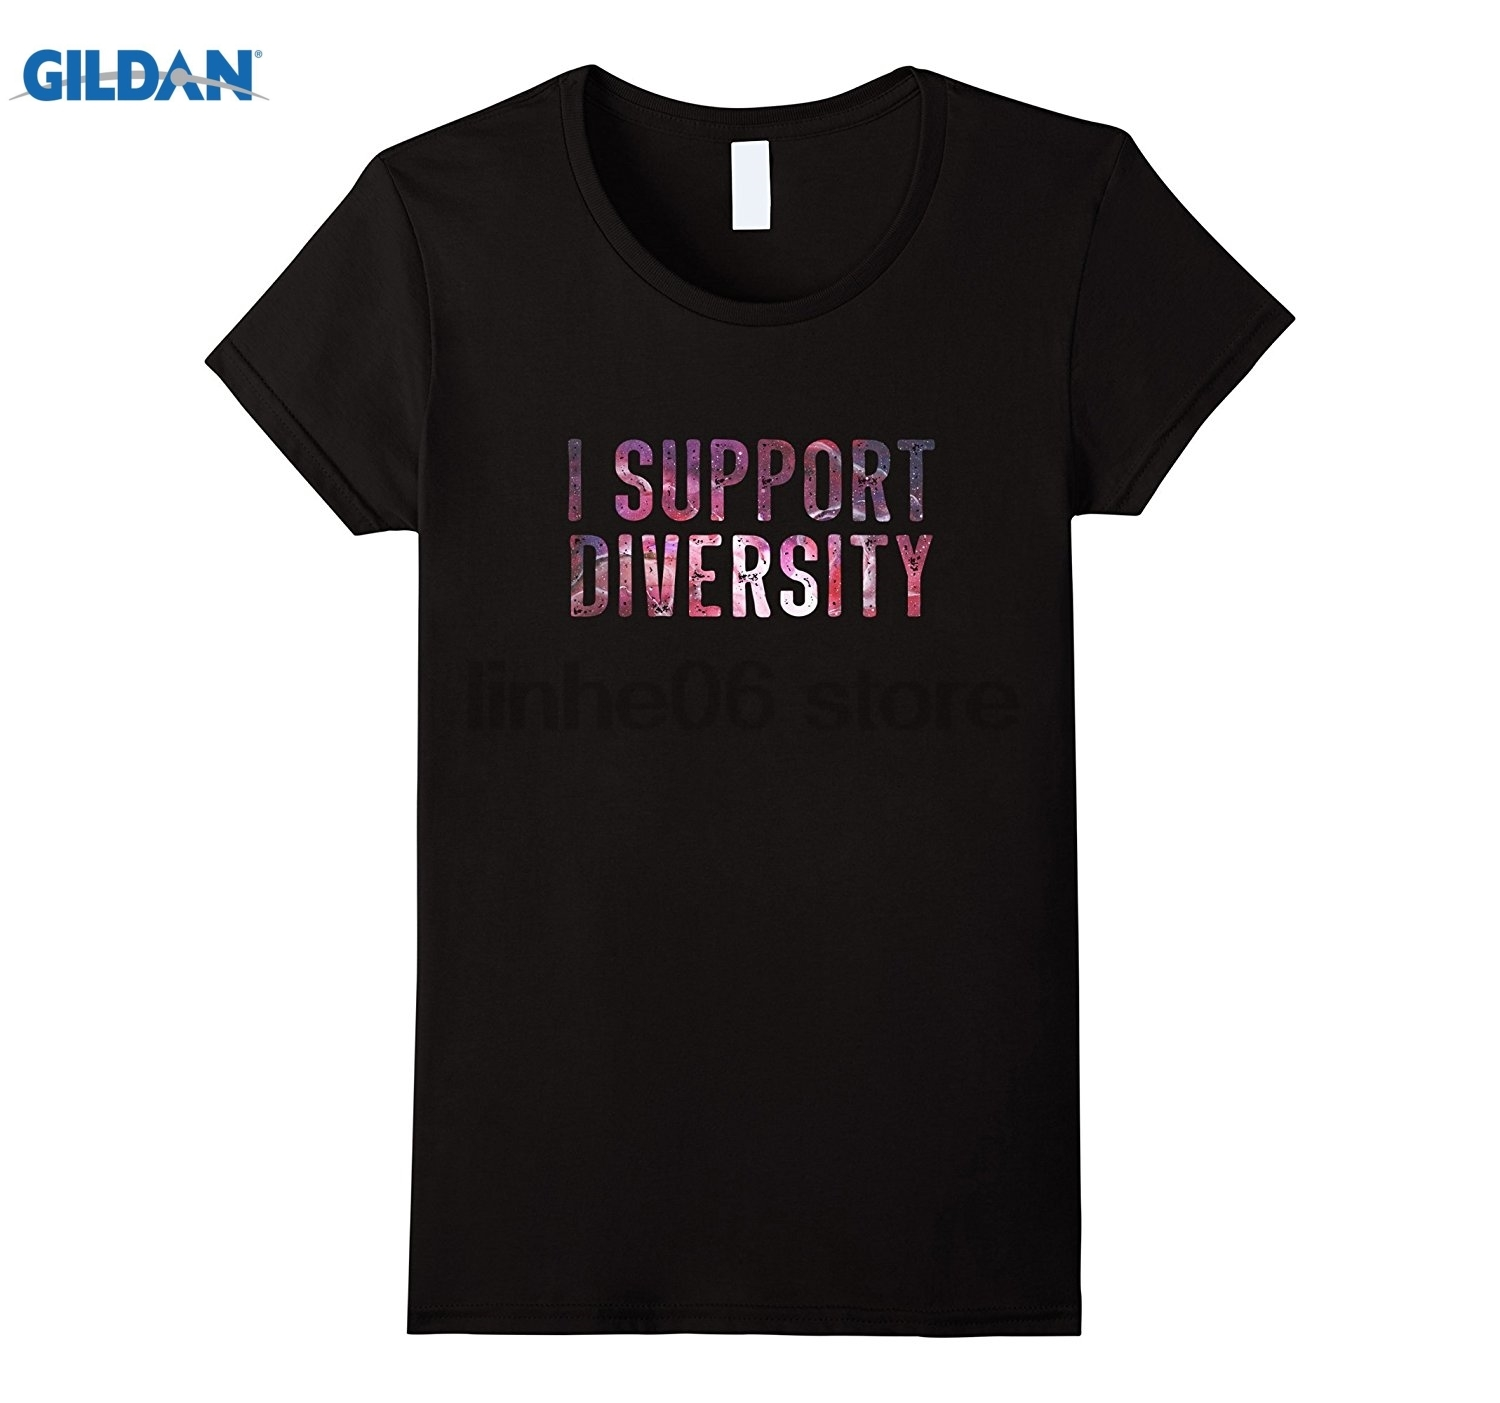 GILDAN I support diversity shirt Dress female T-shirt ...